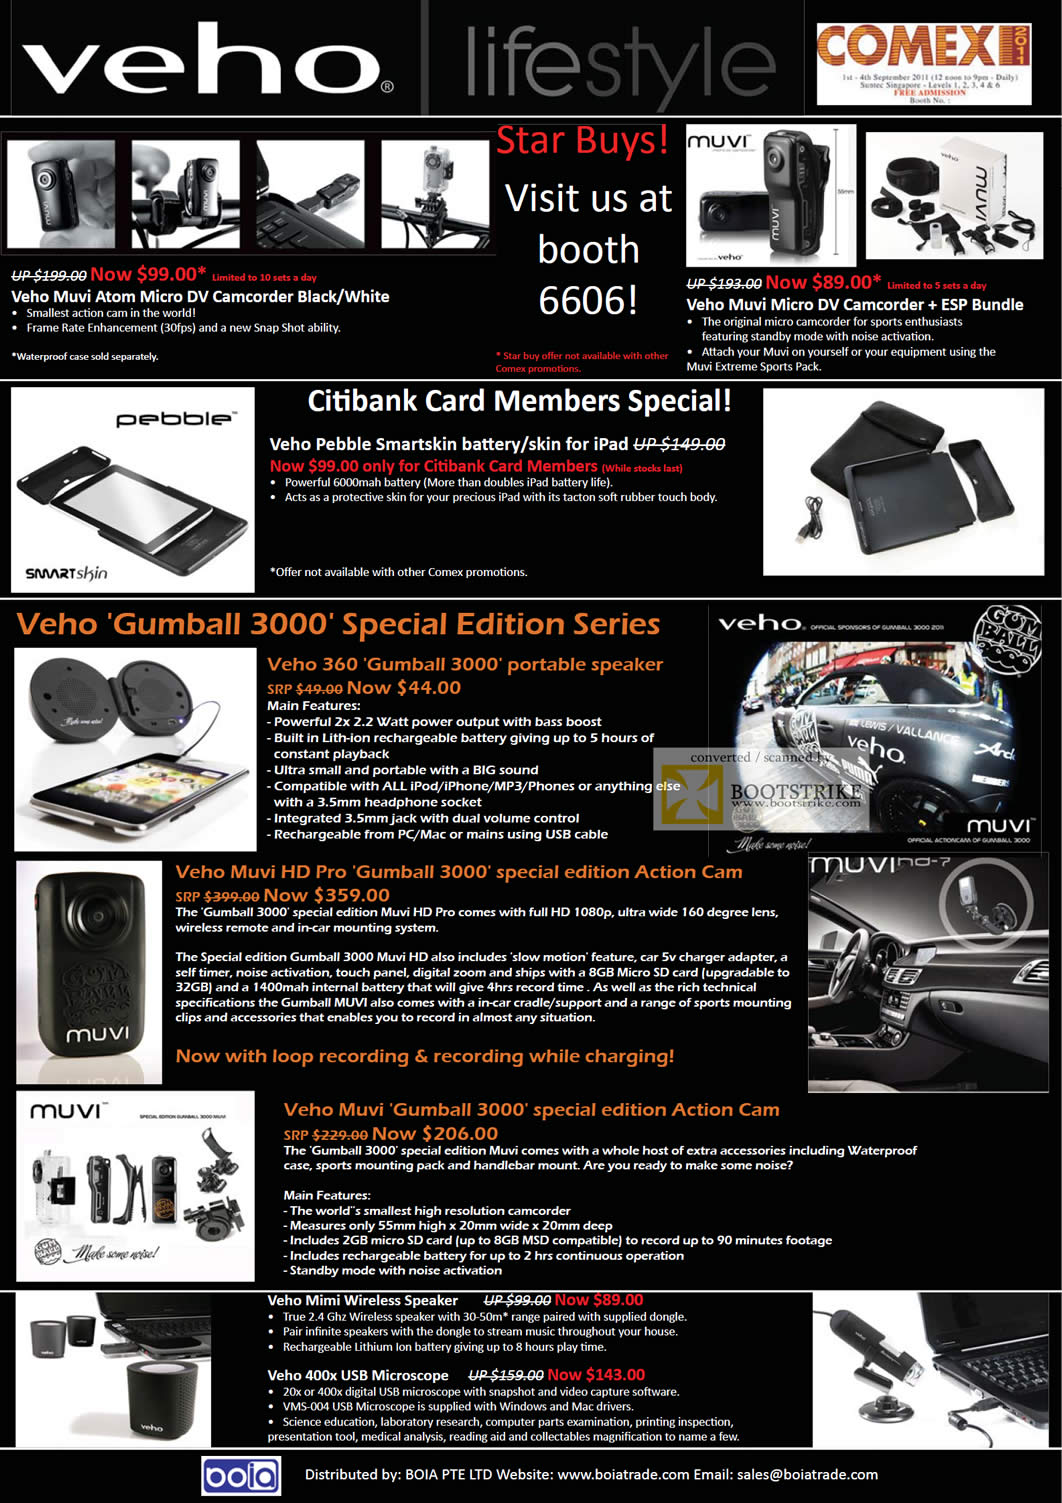 COMEX 2011 price list image brochure of Mojito Veho Muvi Atom Micro DV Camcorder ESP Pebble Battery Skin Gumball 3000 360 HD Pro Action Cam Mimi Wireless Speaker USB Microscope